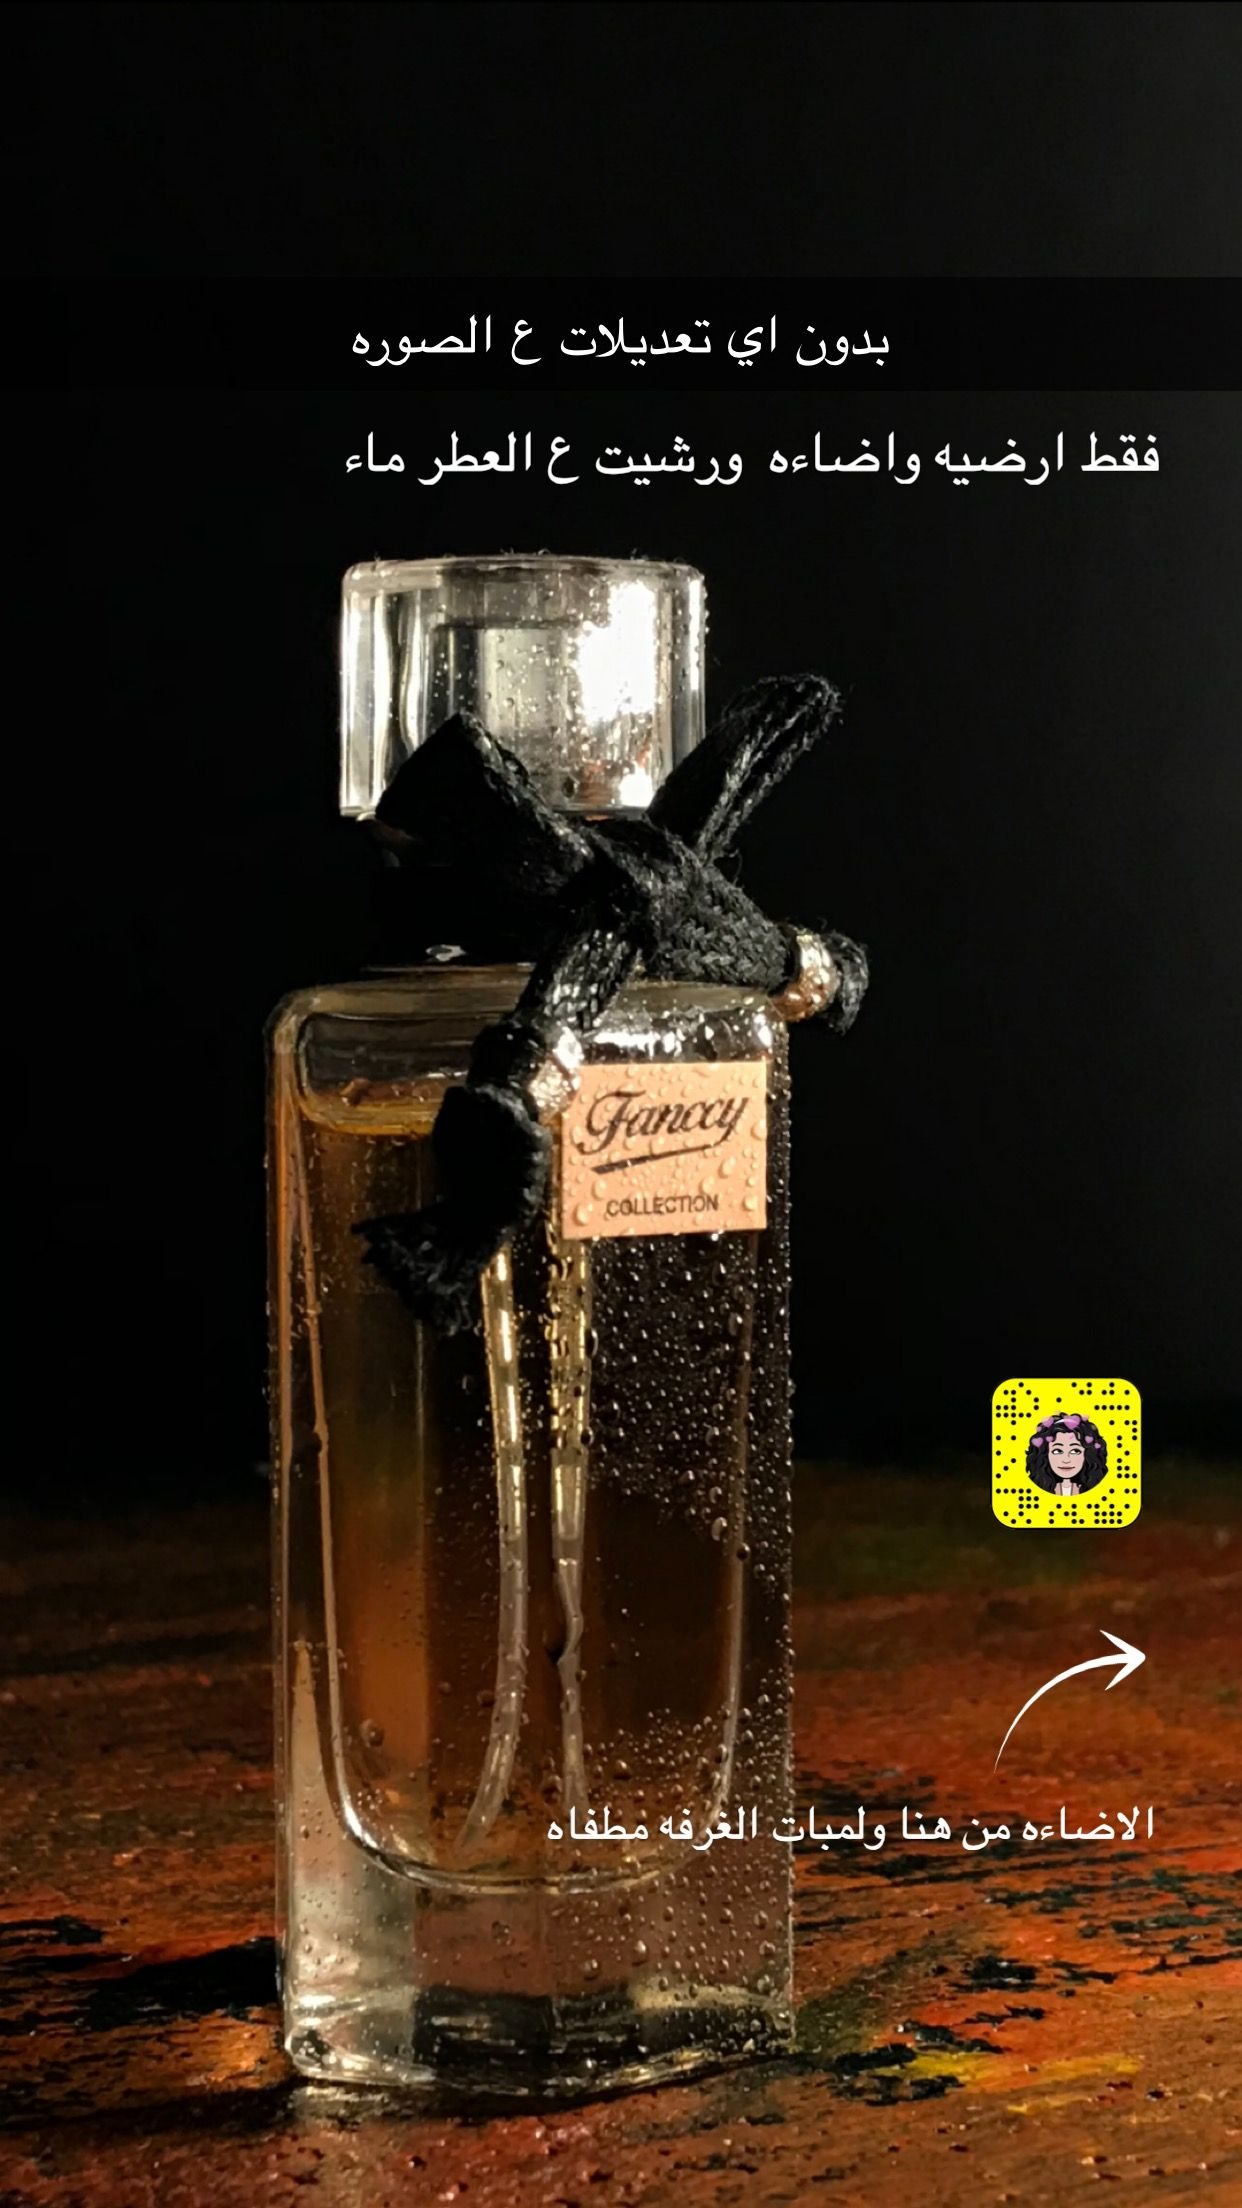 Pin By 𝕋ℍ𝔼 ℙ𝕆𝕊𝕋𝕀𝕍𝔼 𝔾𝕀ℝ𝕃 On App S Take Photo تطبيقات وتصوير Learning Photography Aesthetic Coffee Perfume Bottles